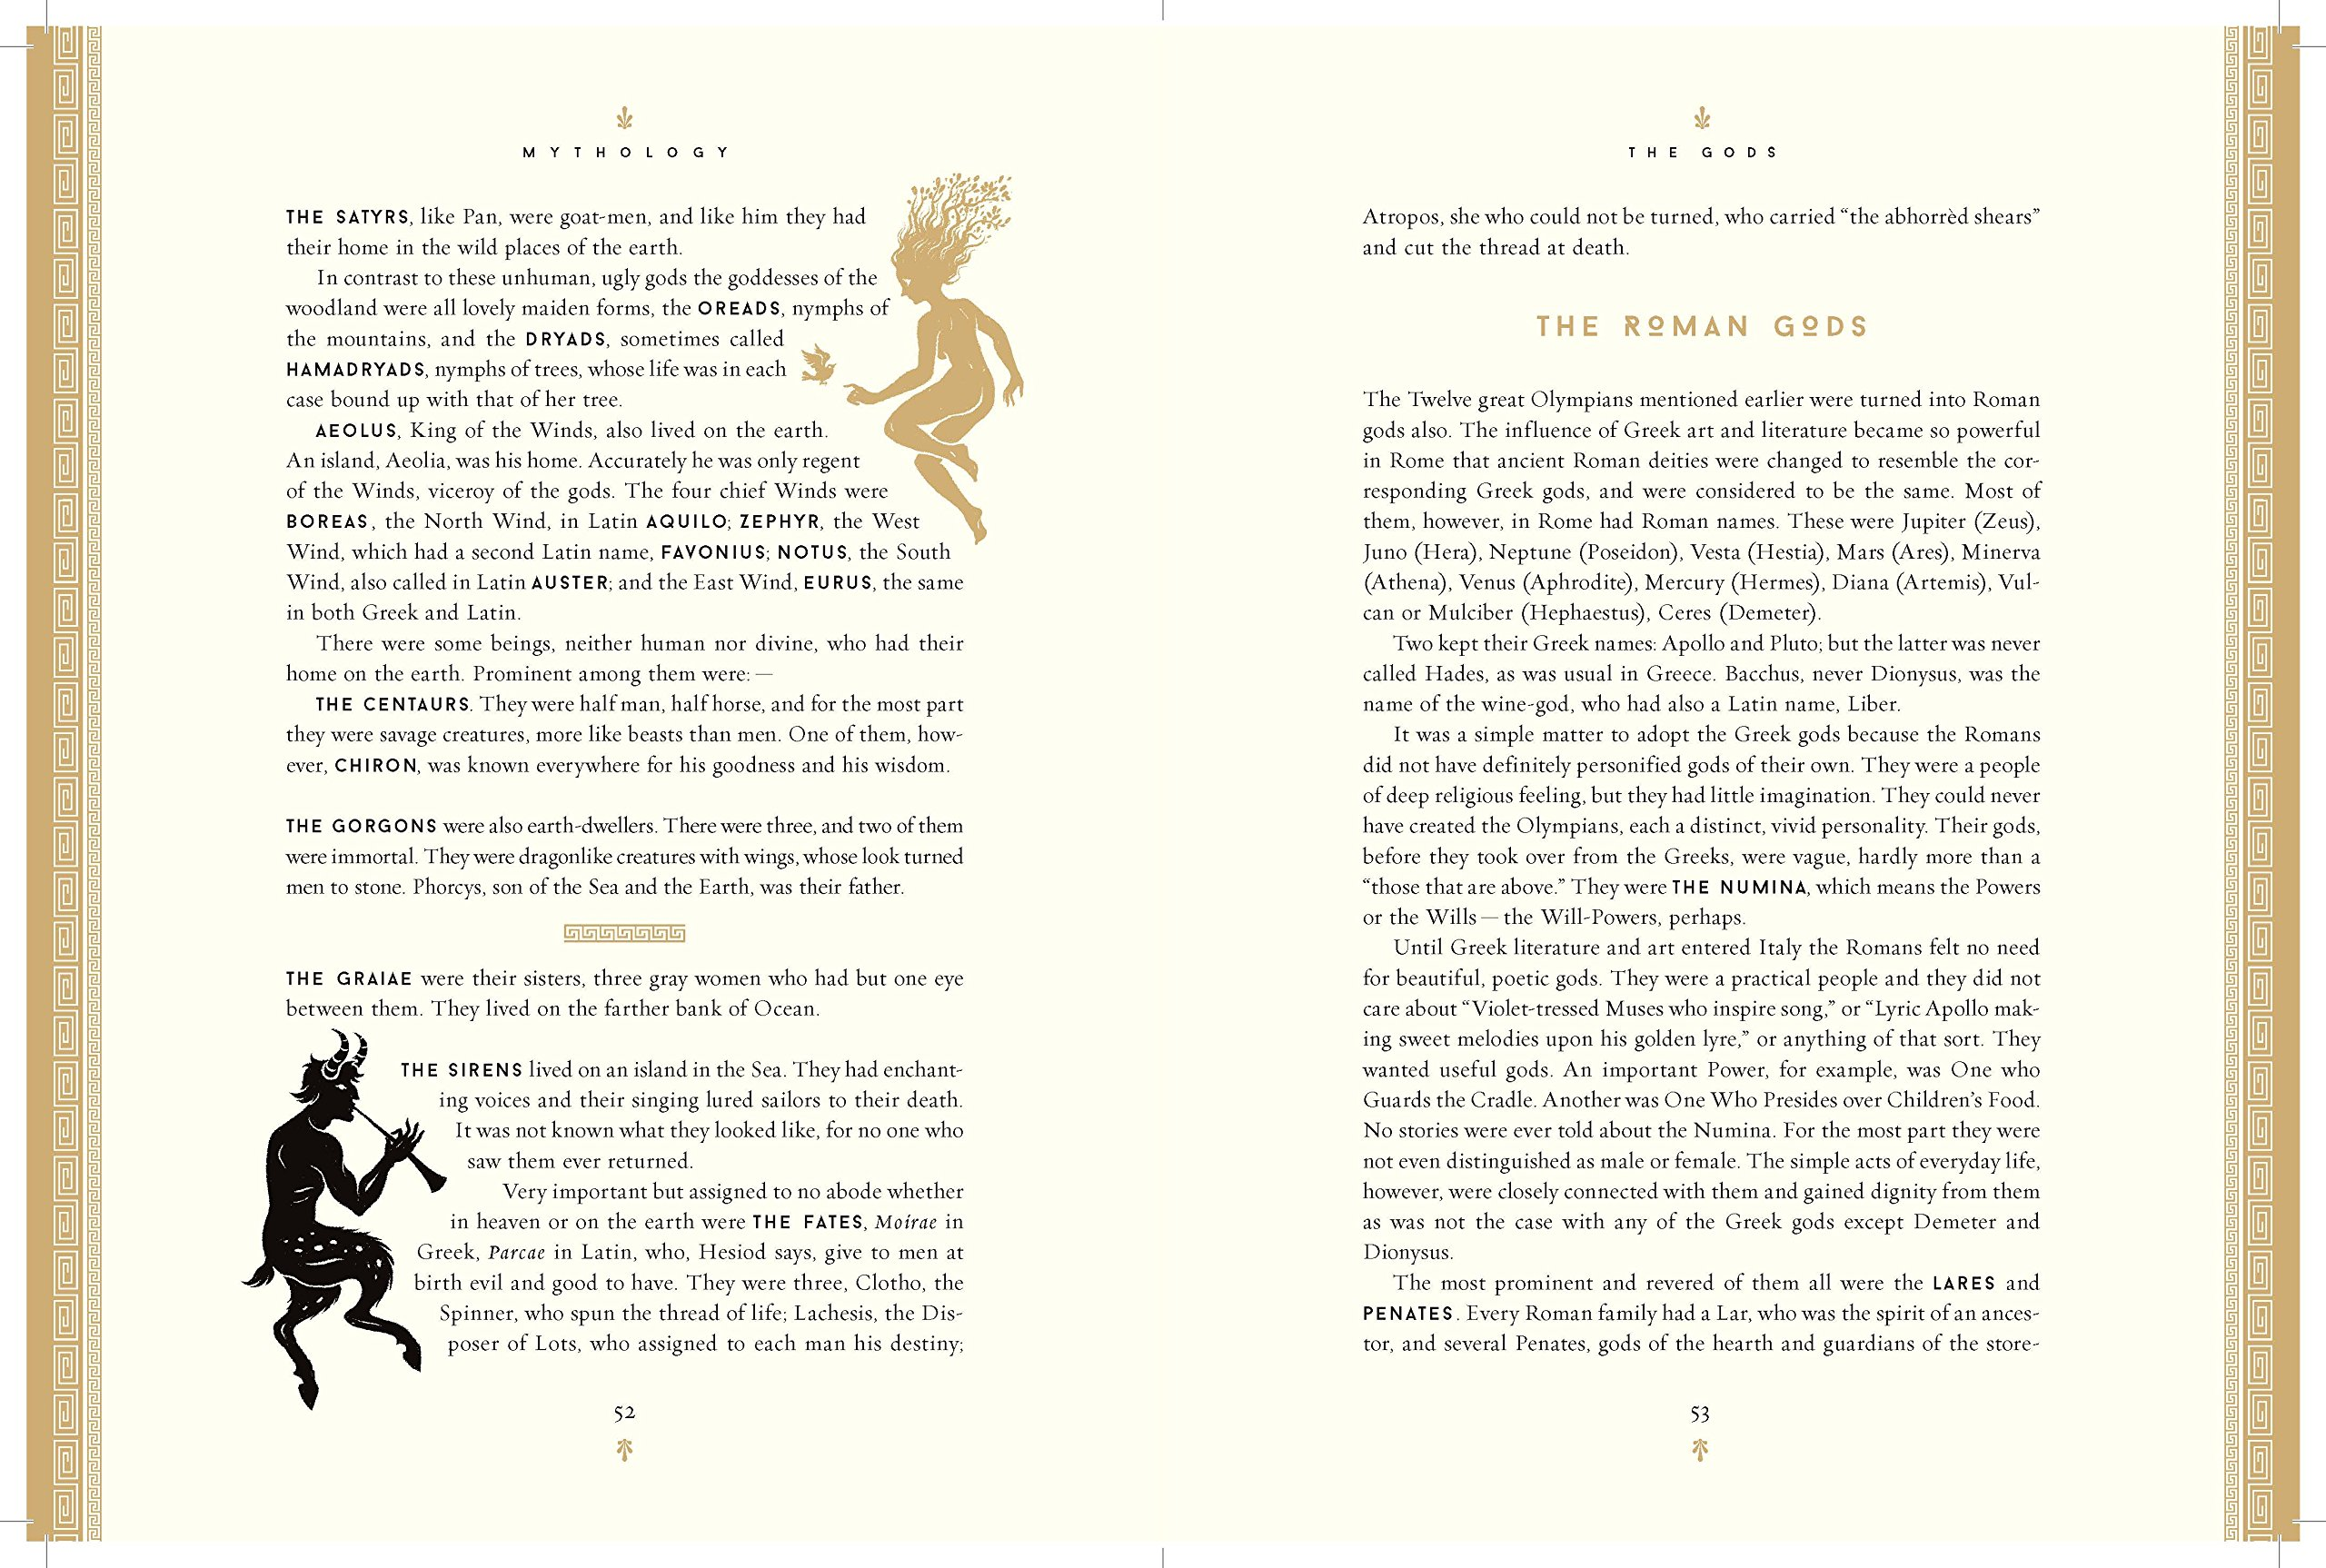 Amazon.com: Mythology: Timeless Tales of Gods and Heroes, 75th Anniversary  Illustrated Edition (9780316438520): Edith Hamilton, Jim Tierney: Books